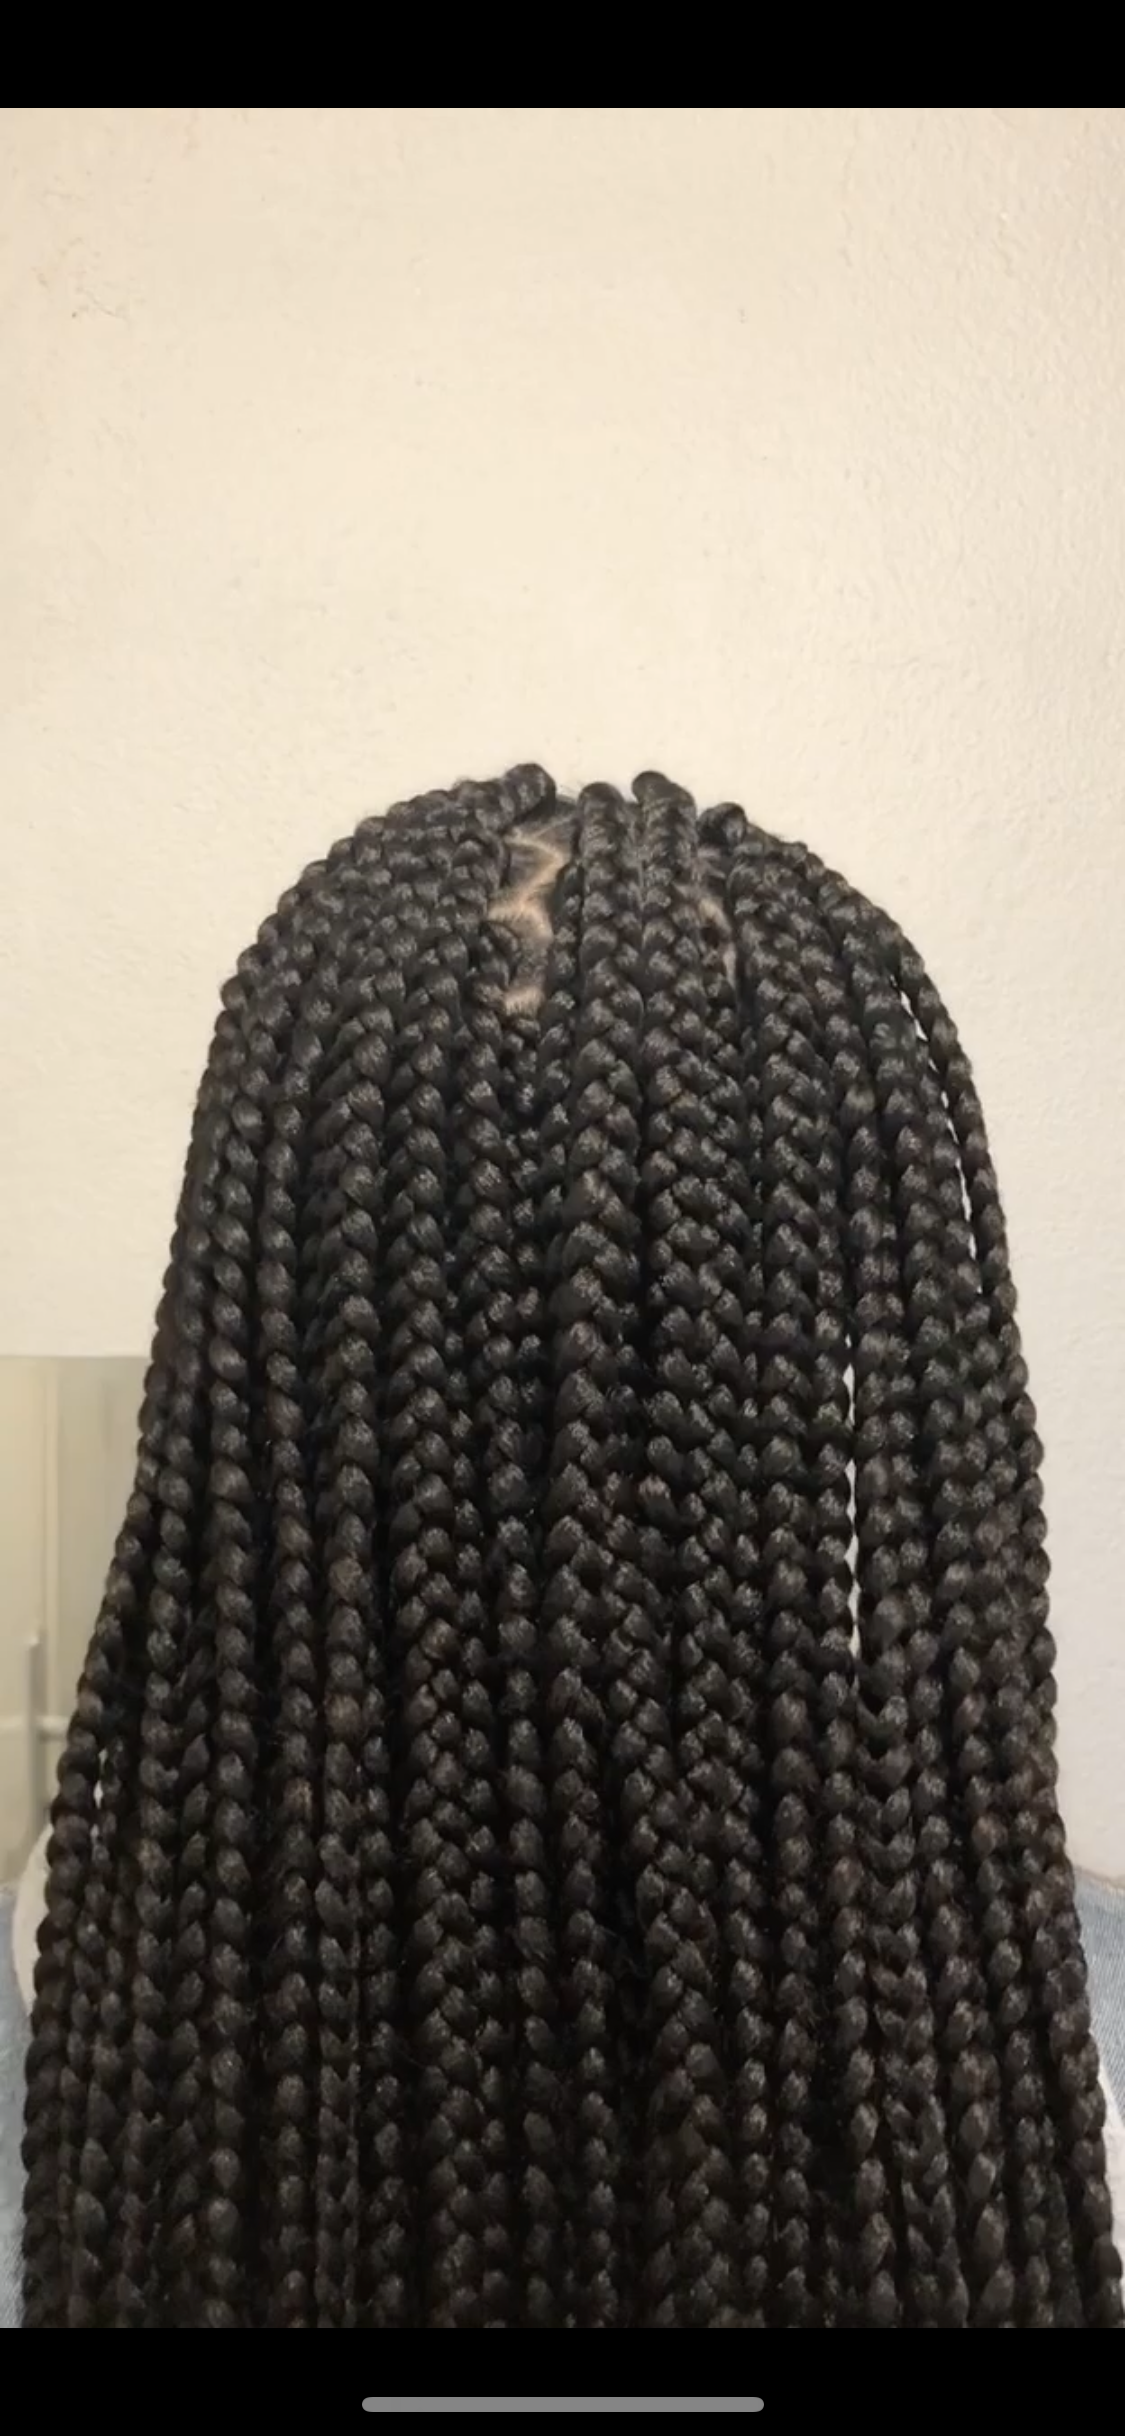 salon de coiffure afro tresse tresses box braids crochet braids vanilles tissages paris 75 77 78 91 92 93 94 95 UPLPJKTK